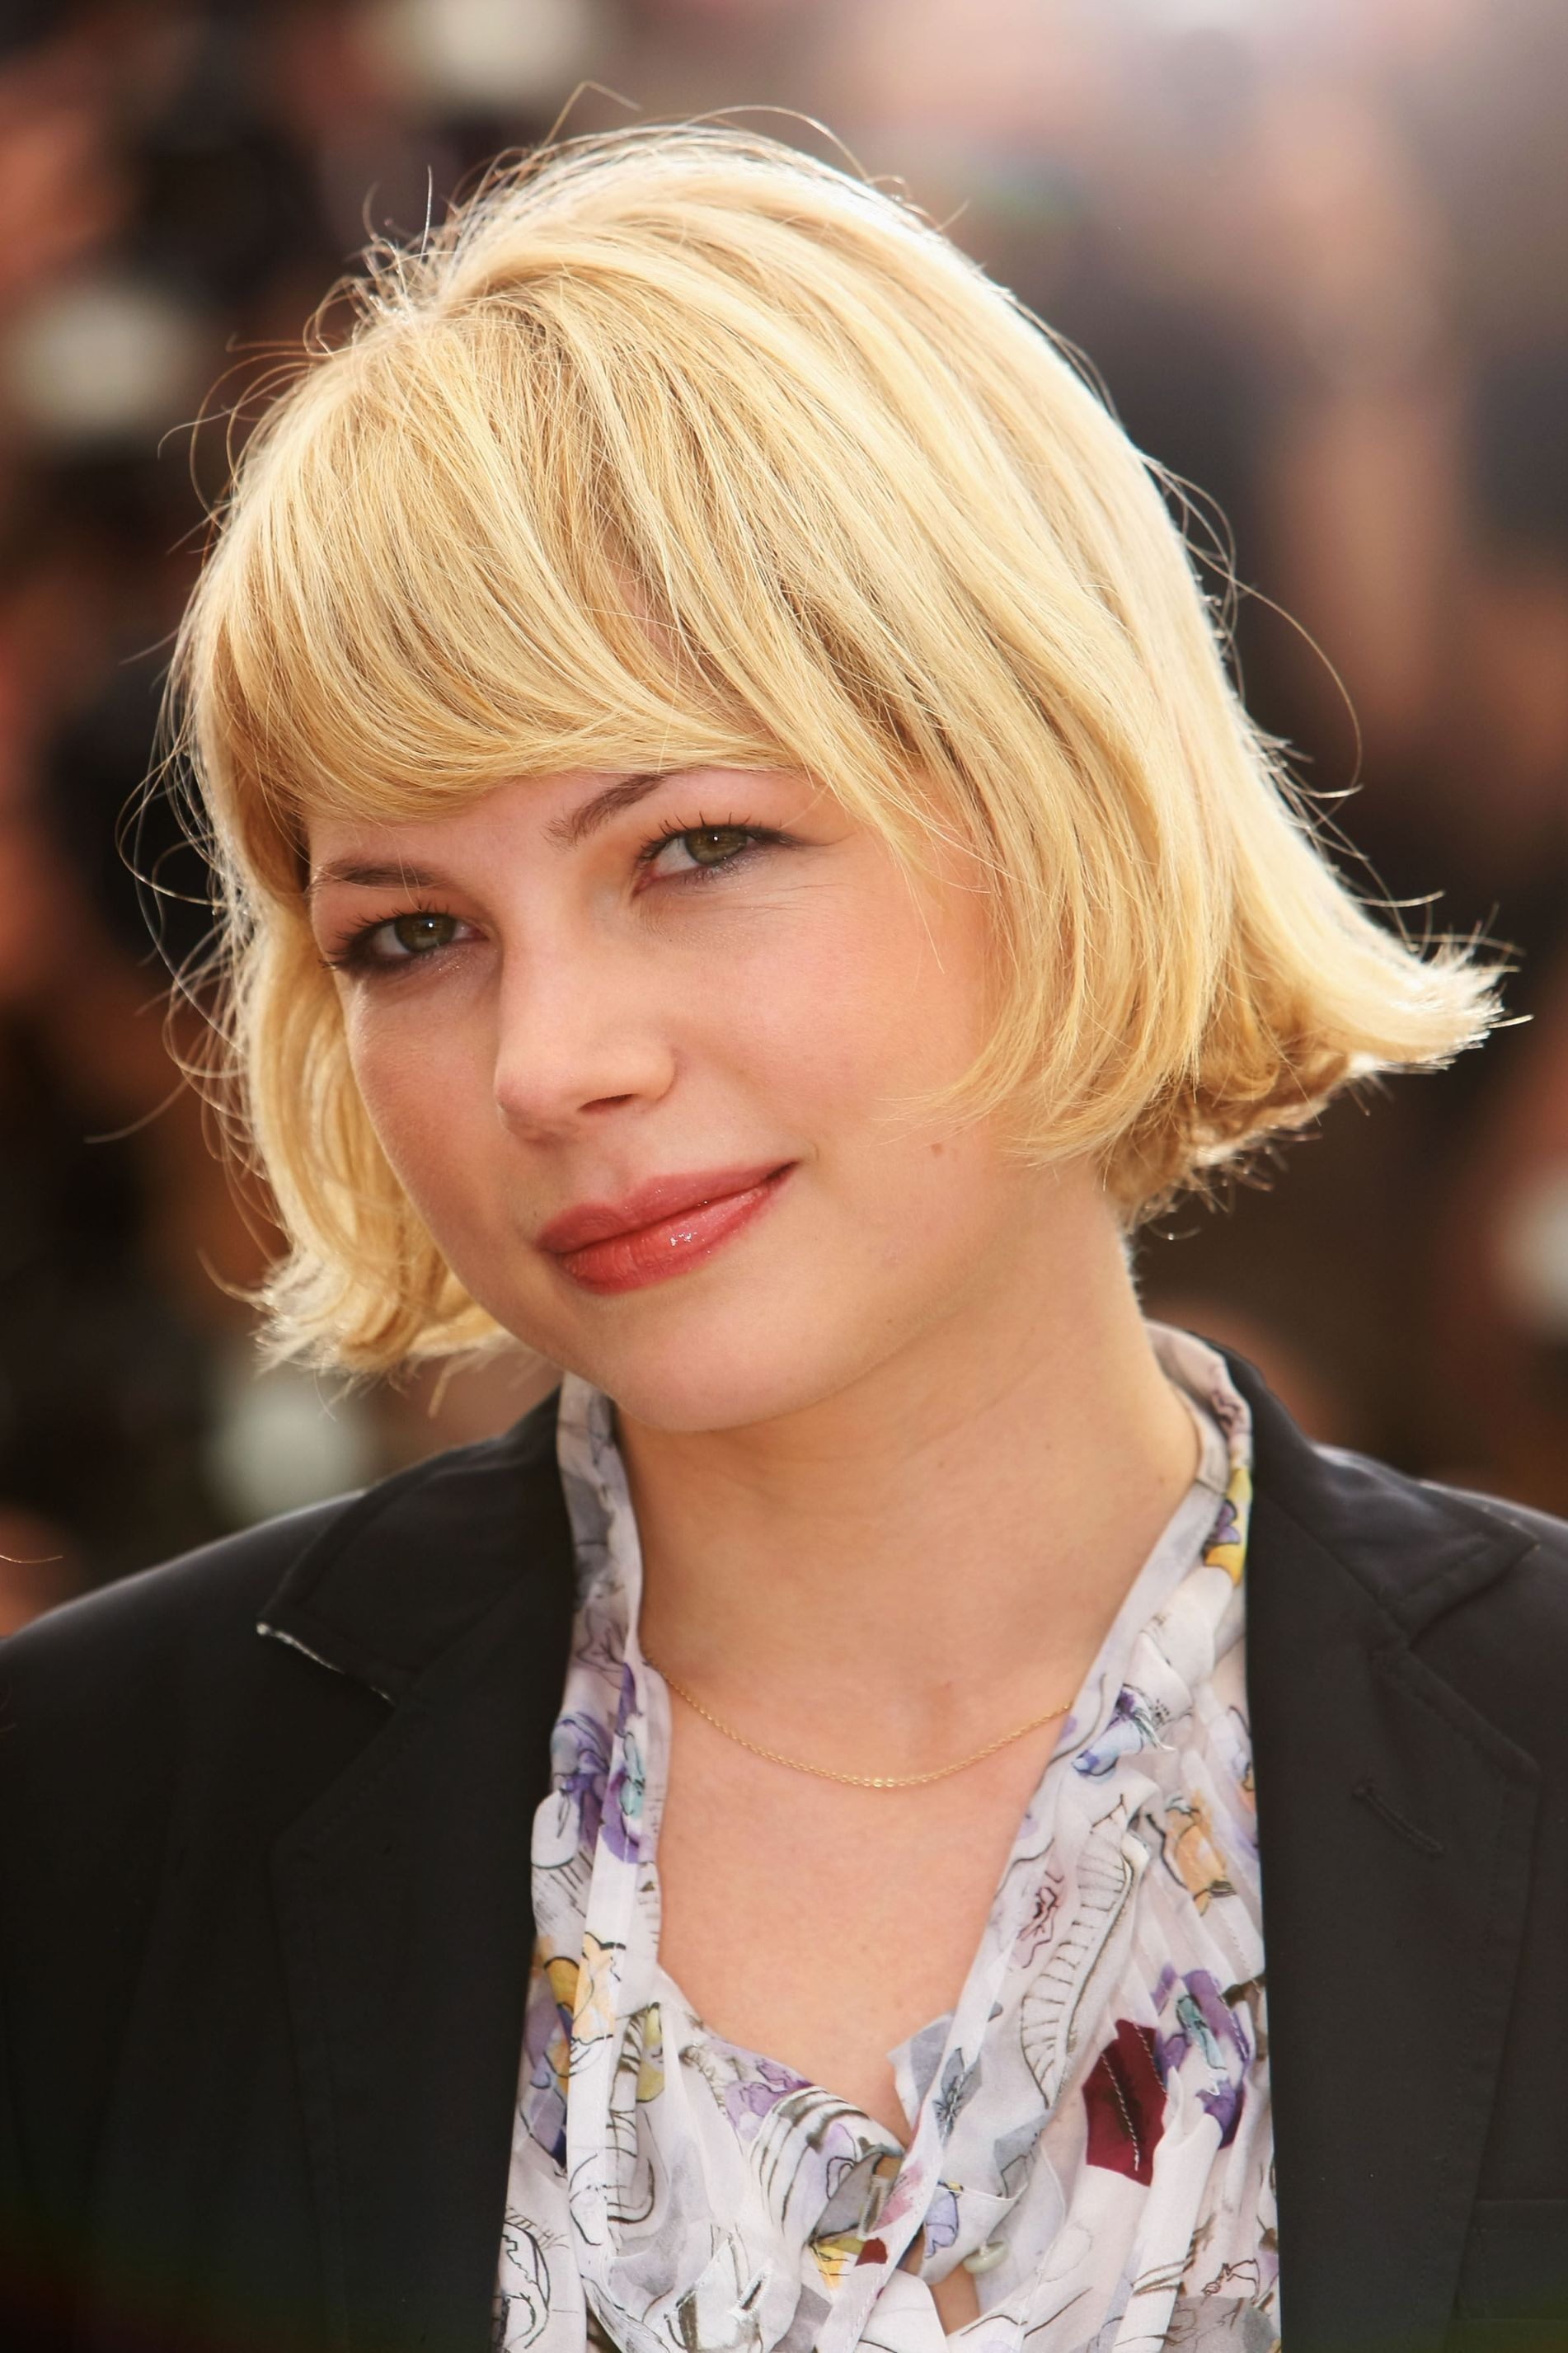 Michelle Williams Actress Photo 14 Of 418 Pics Wallpaper